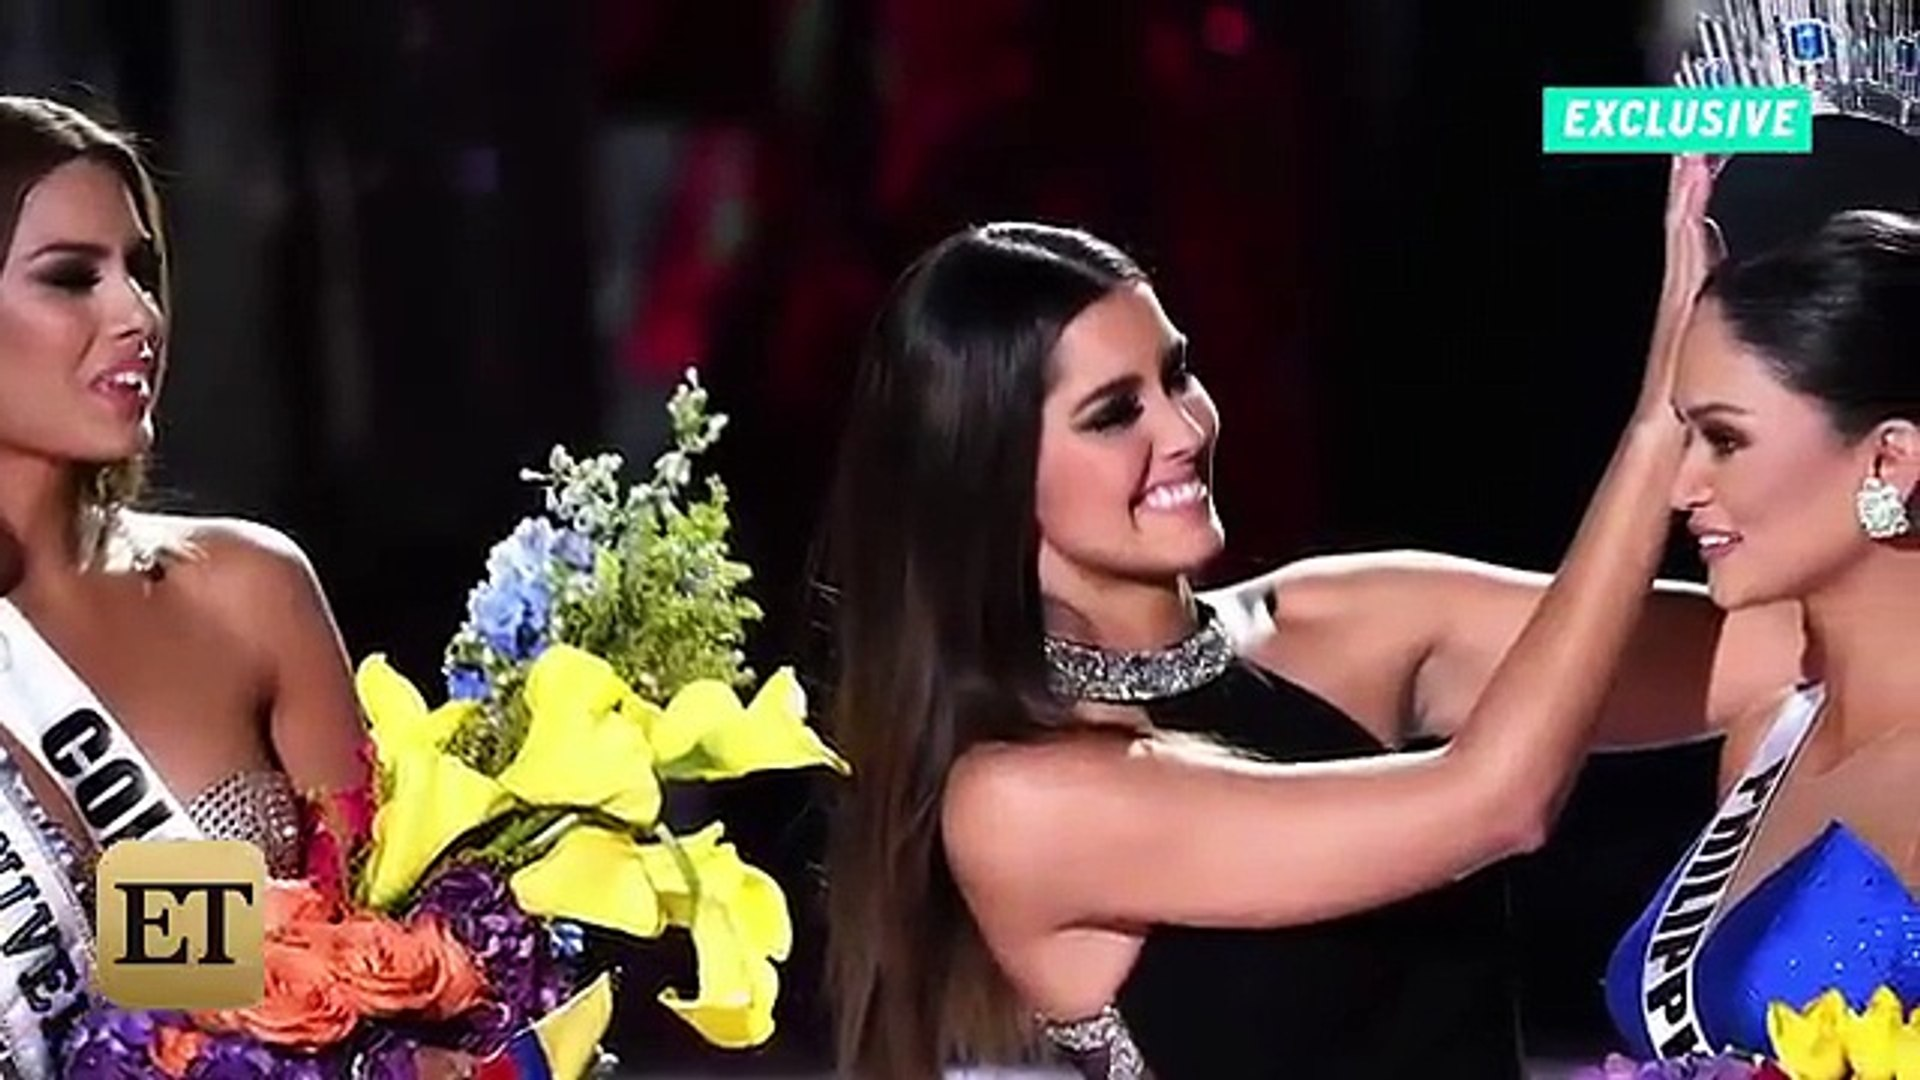 EXCLUSIVE_ Miss Philippines Speaks Out On 'Confusing' Miss Universe Win